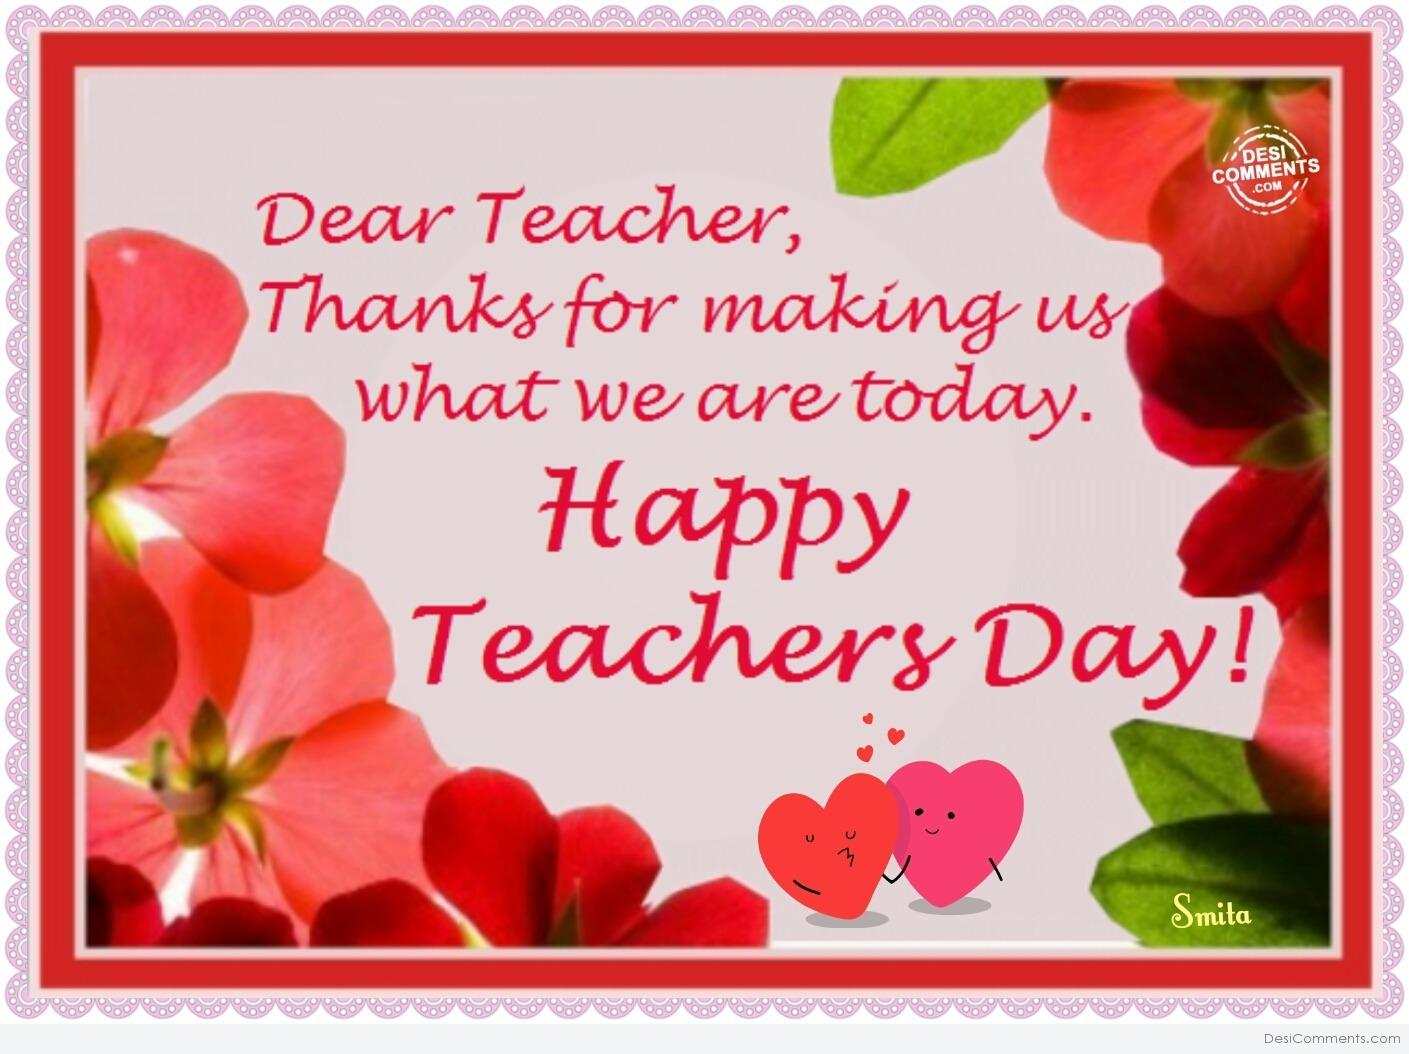 Happy teachers day desicomments happy teachers day kristyandbryce Image collections